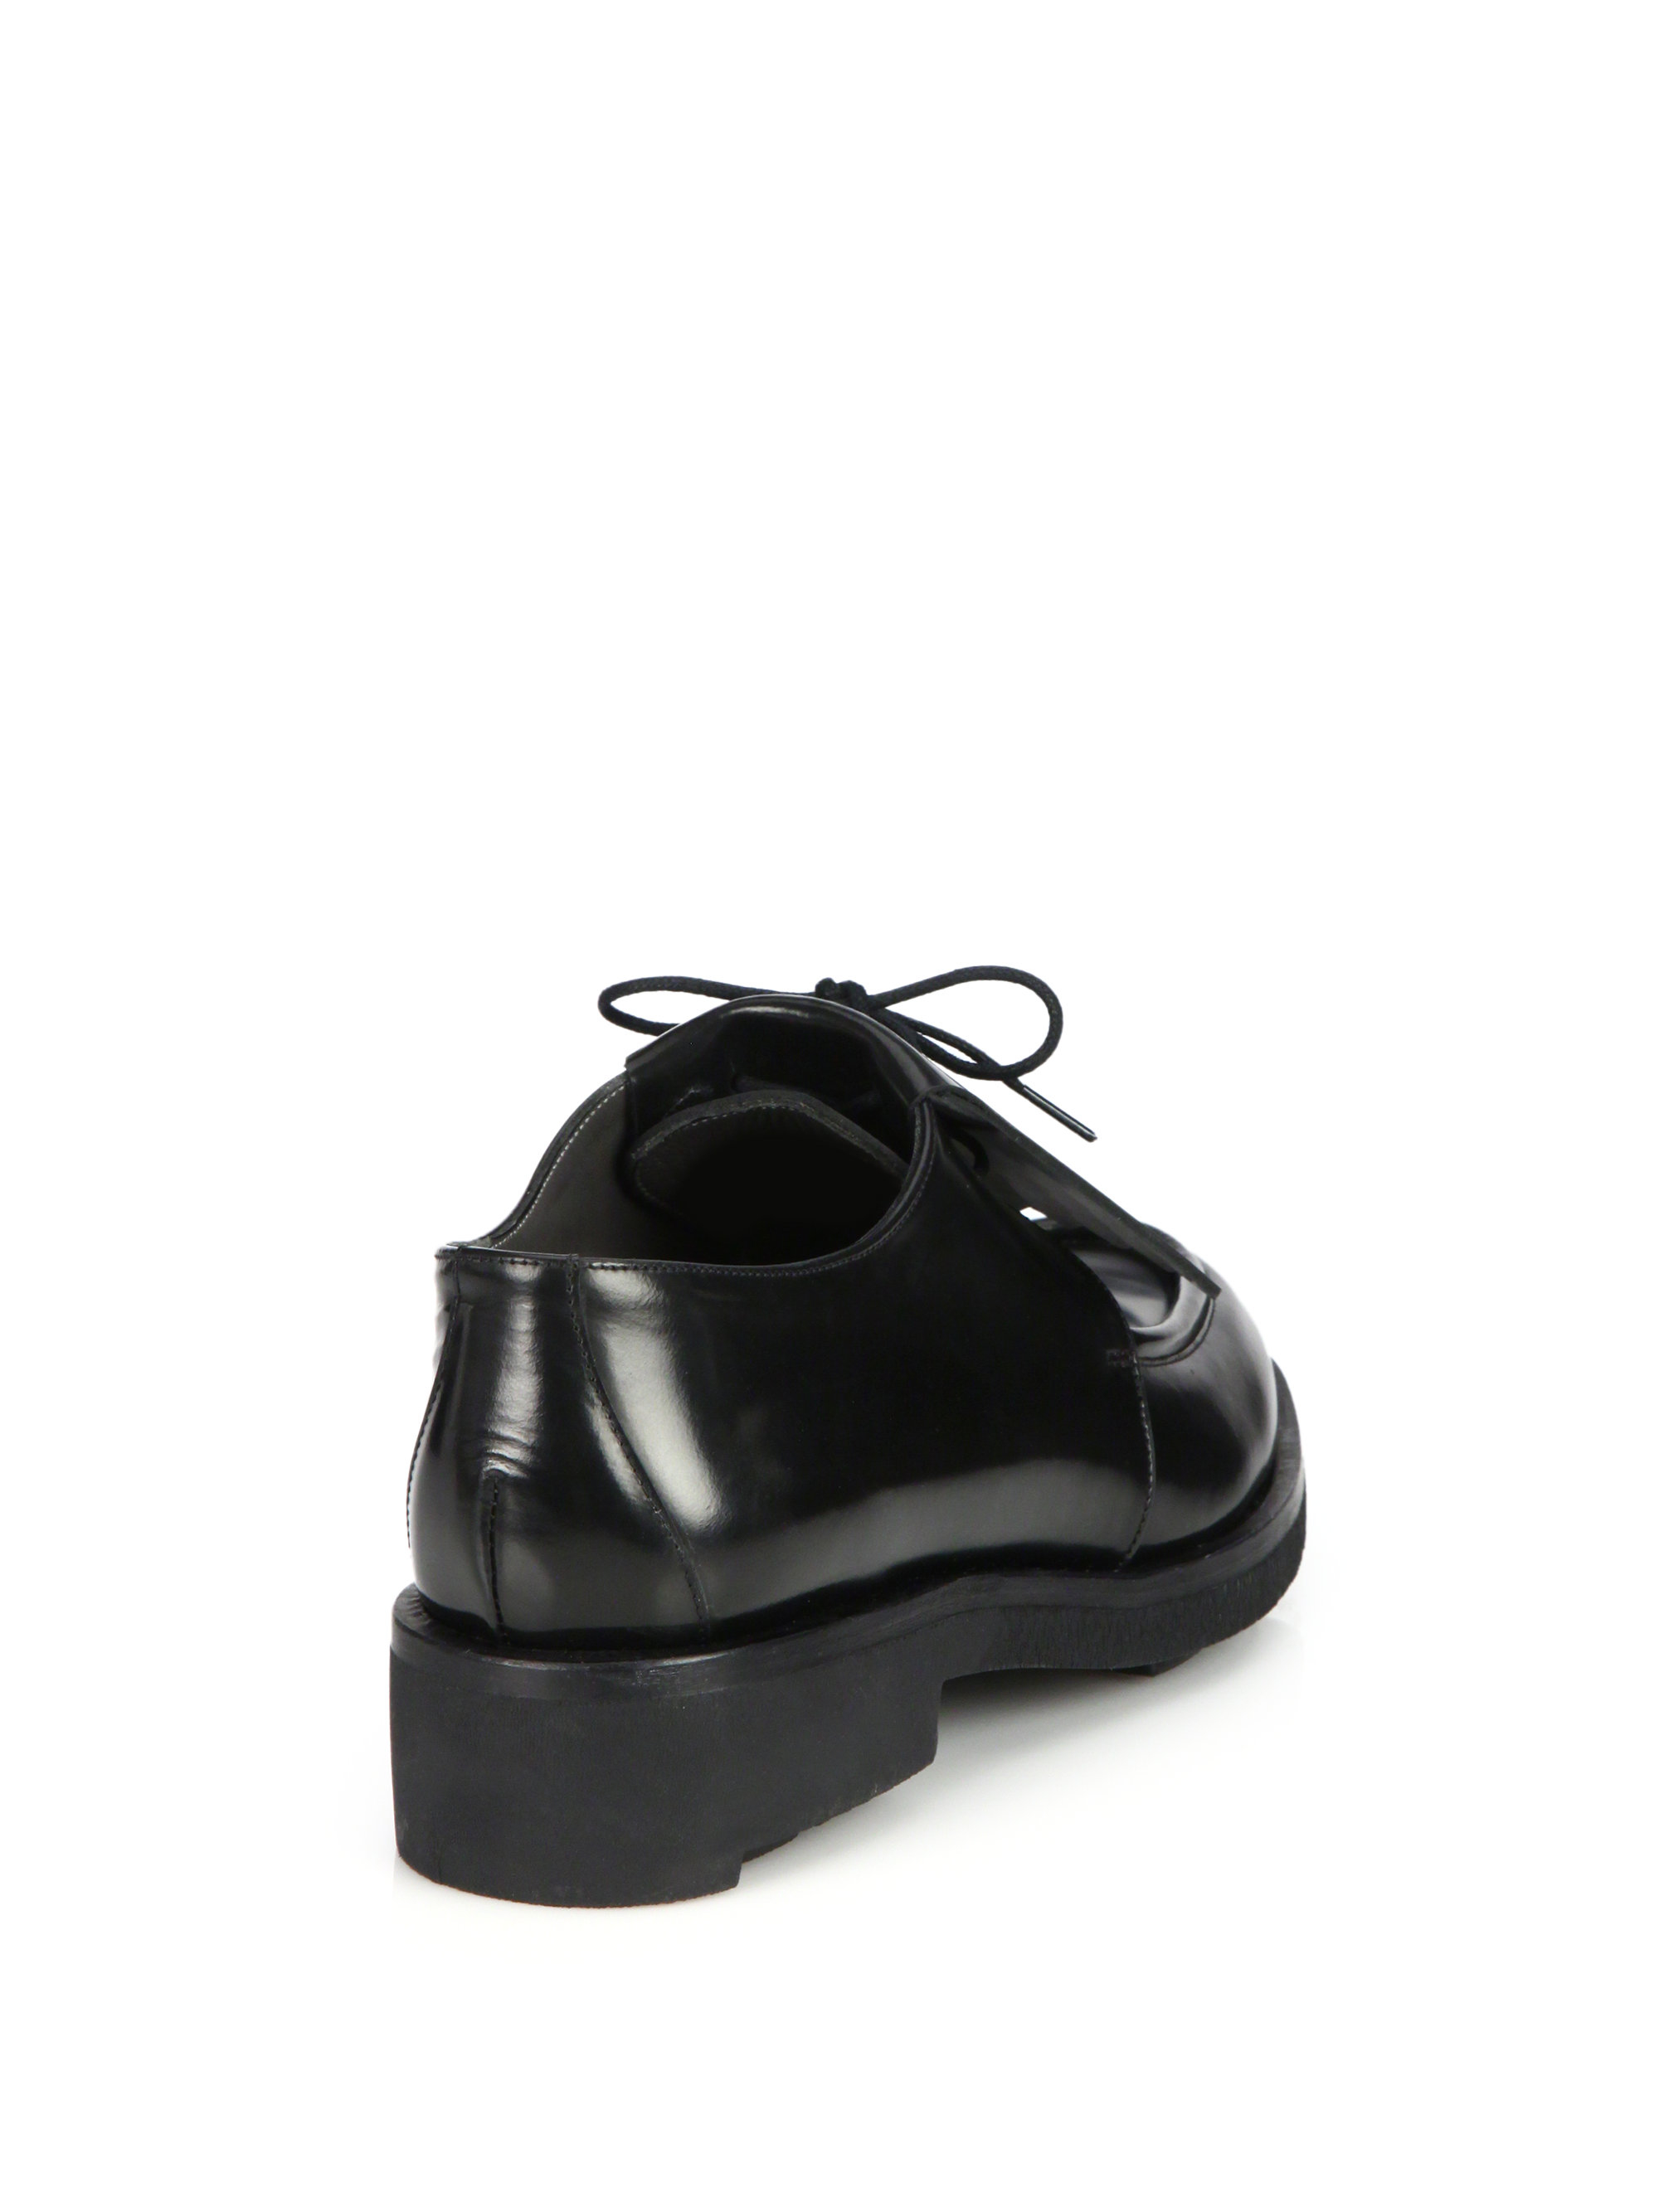 Robert Clergerie Fringed detail loafer mules daXCa